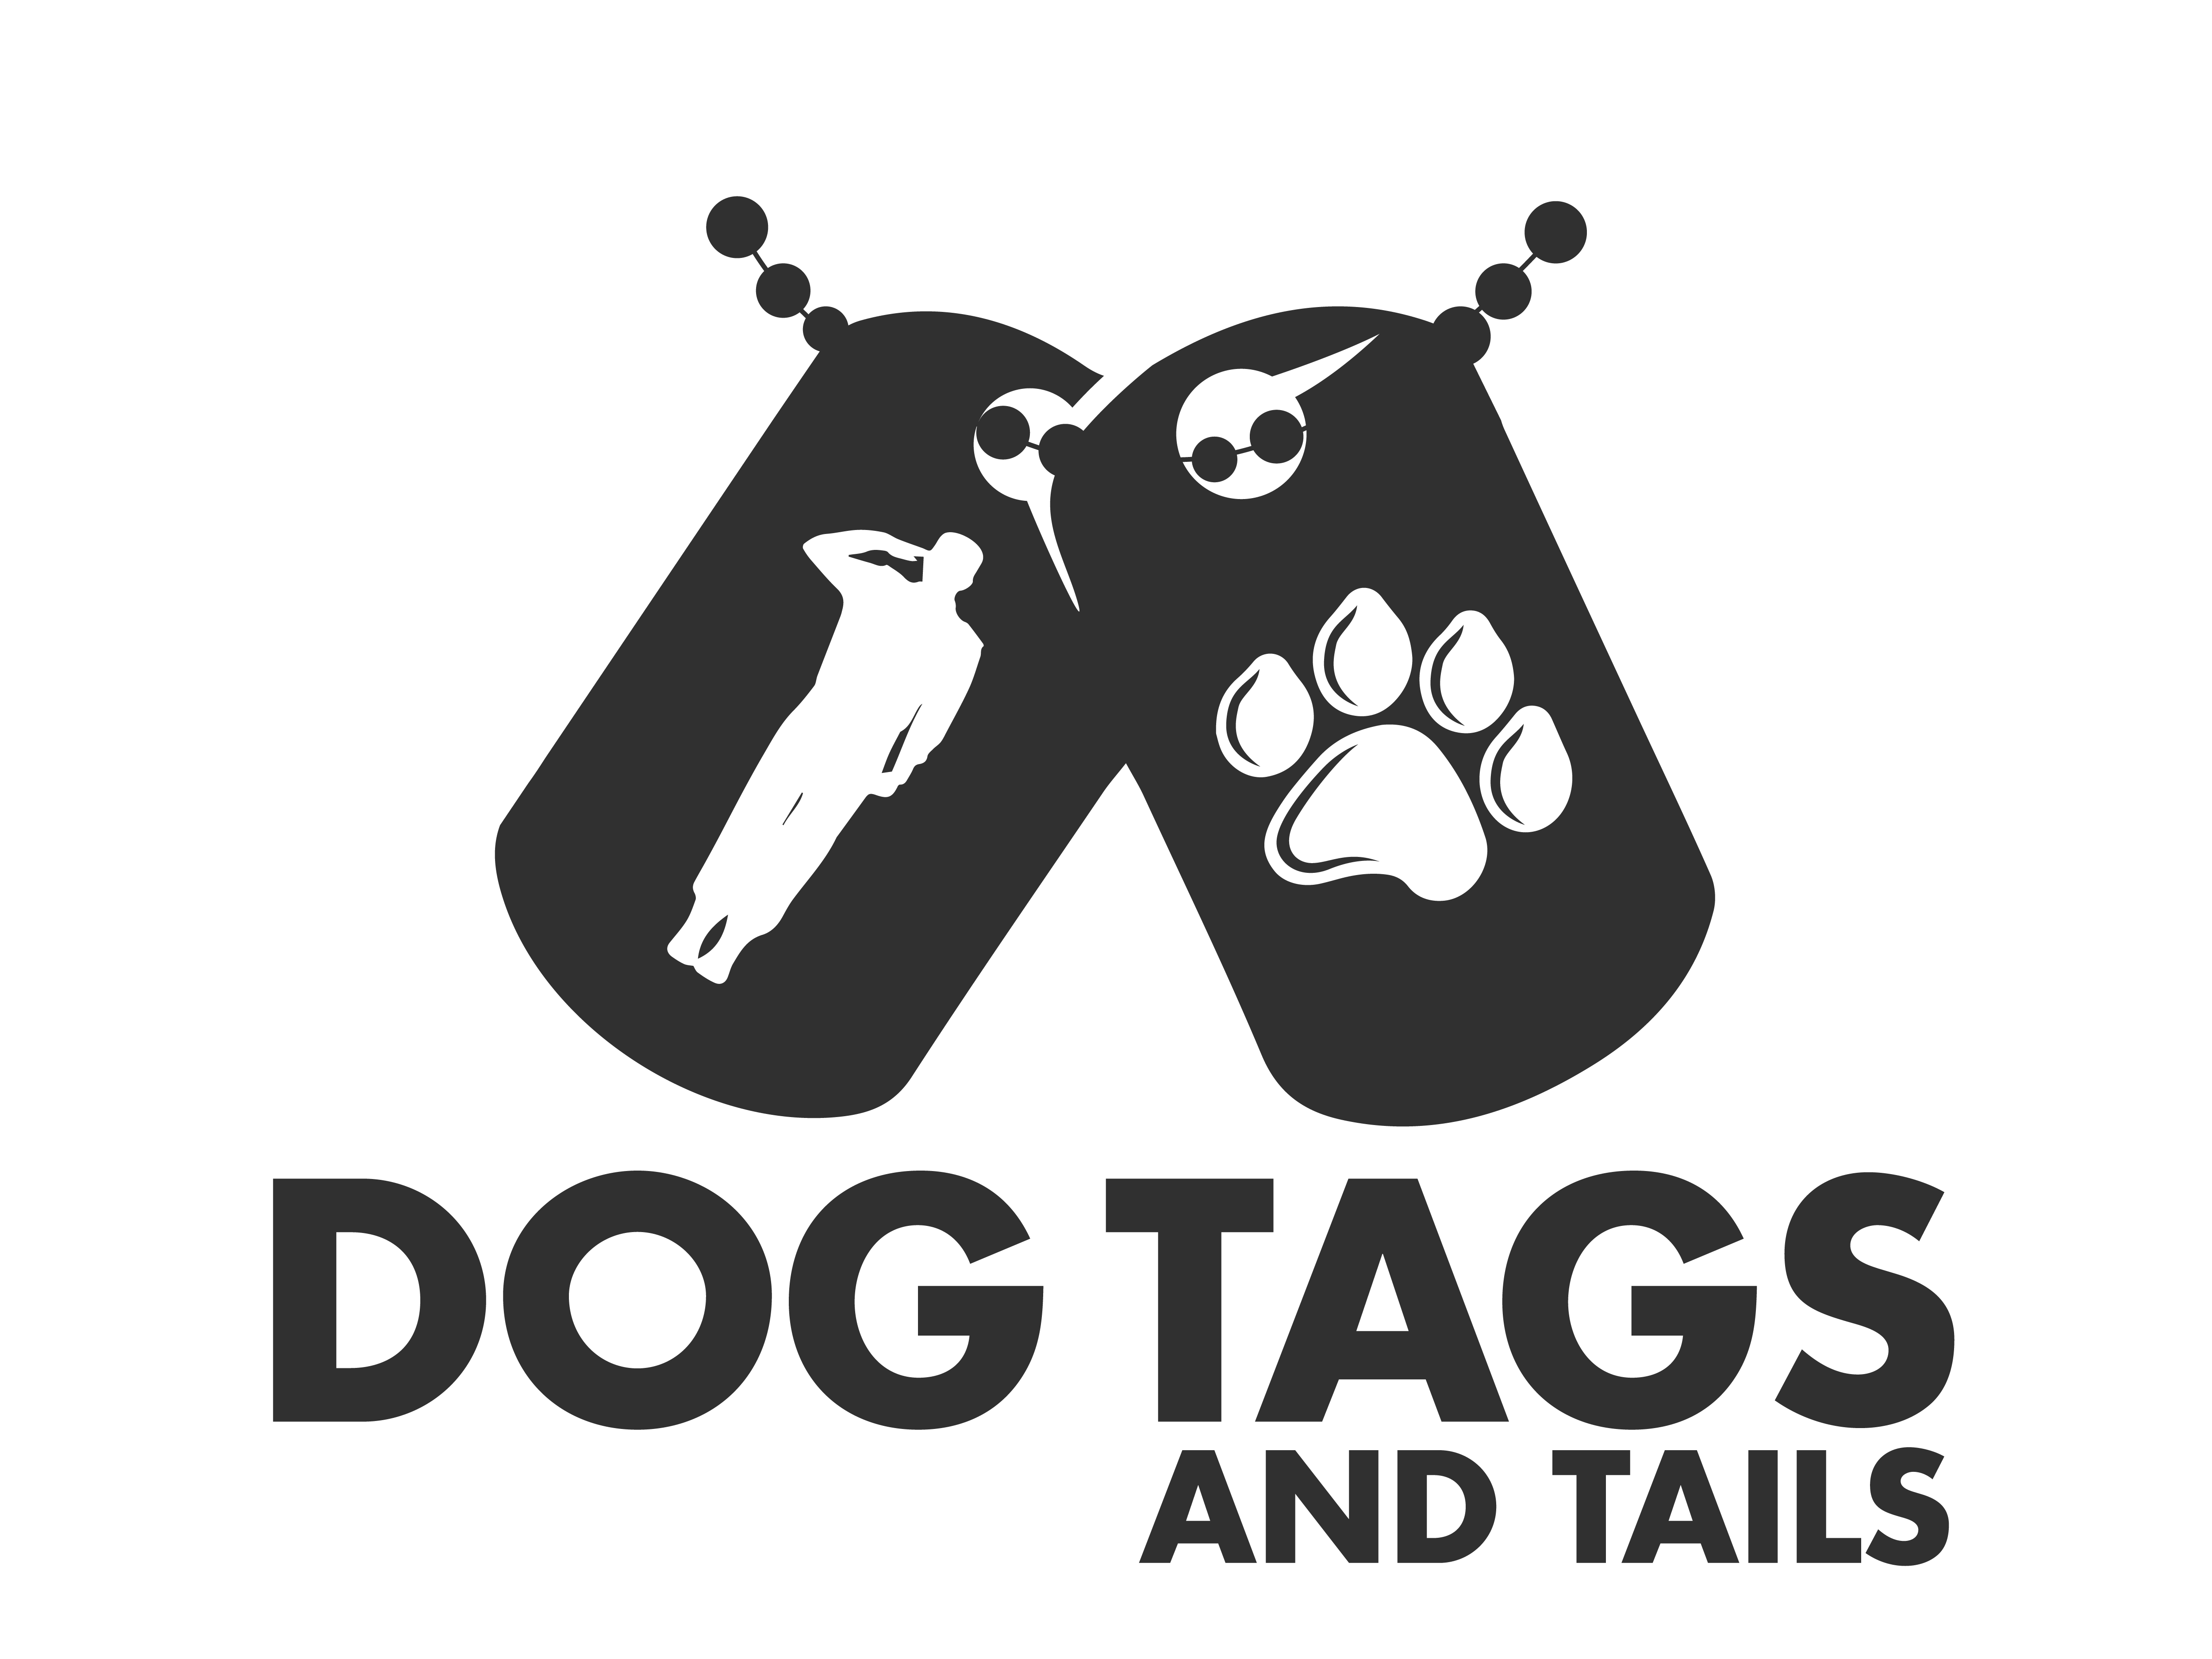 Army dog tags clipart jpg library download Freedom Famfest ft Bark in the Park 2018 - Dog Tags and Tails jpg library download